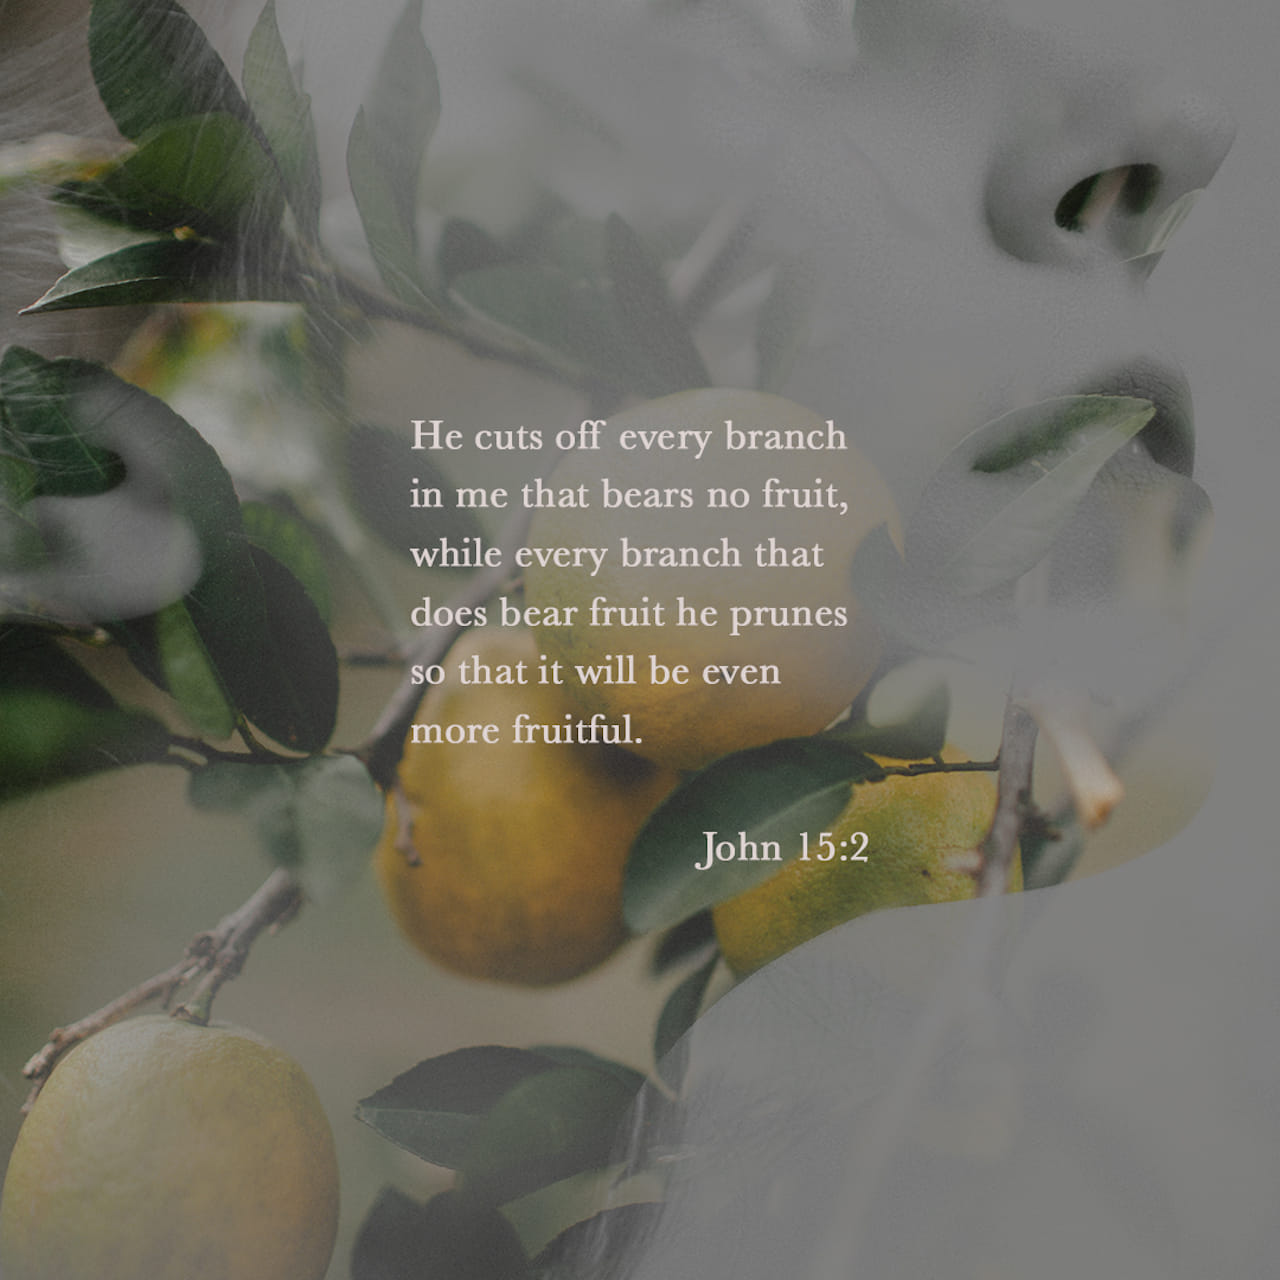 He cuts off every branch in me that bears no fruit, while every branch that does bear fruit he prunes so that it will be even more fruitful. - John 15:2 - Verse Image